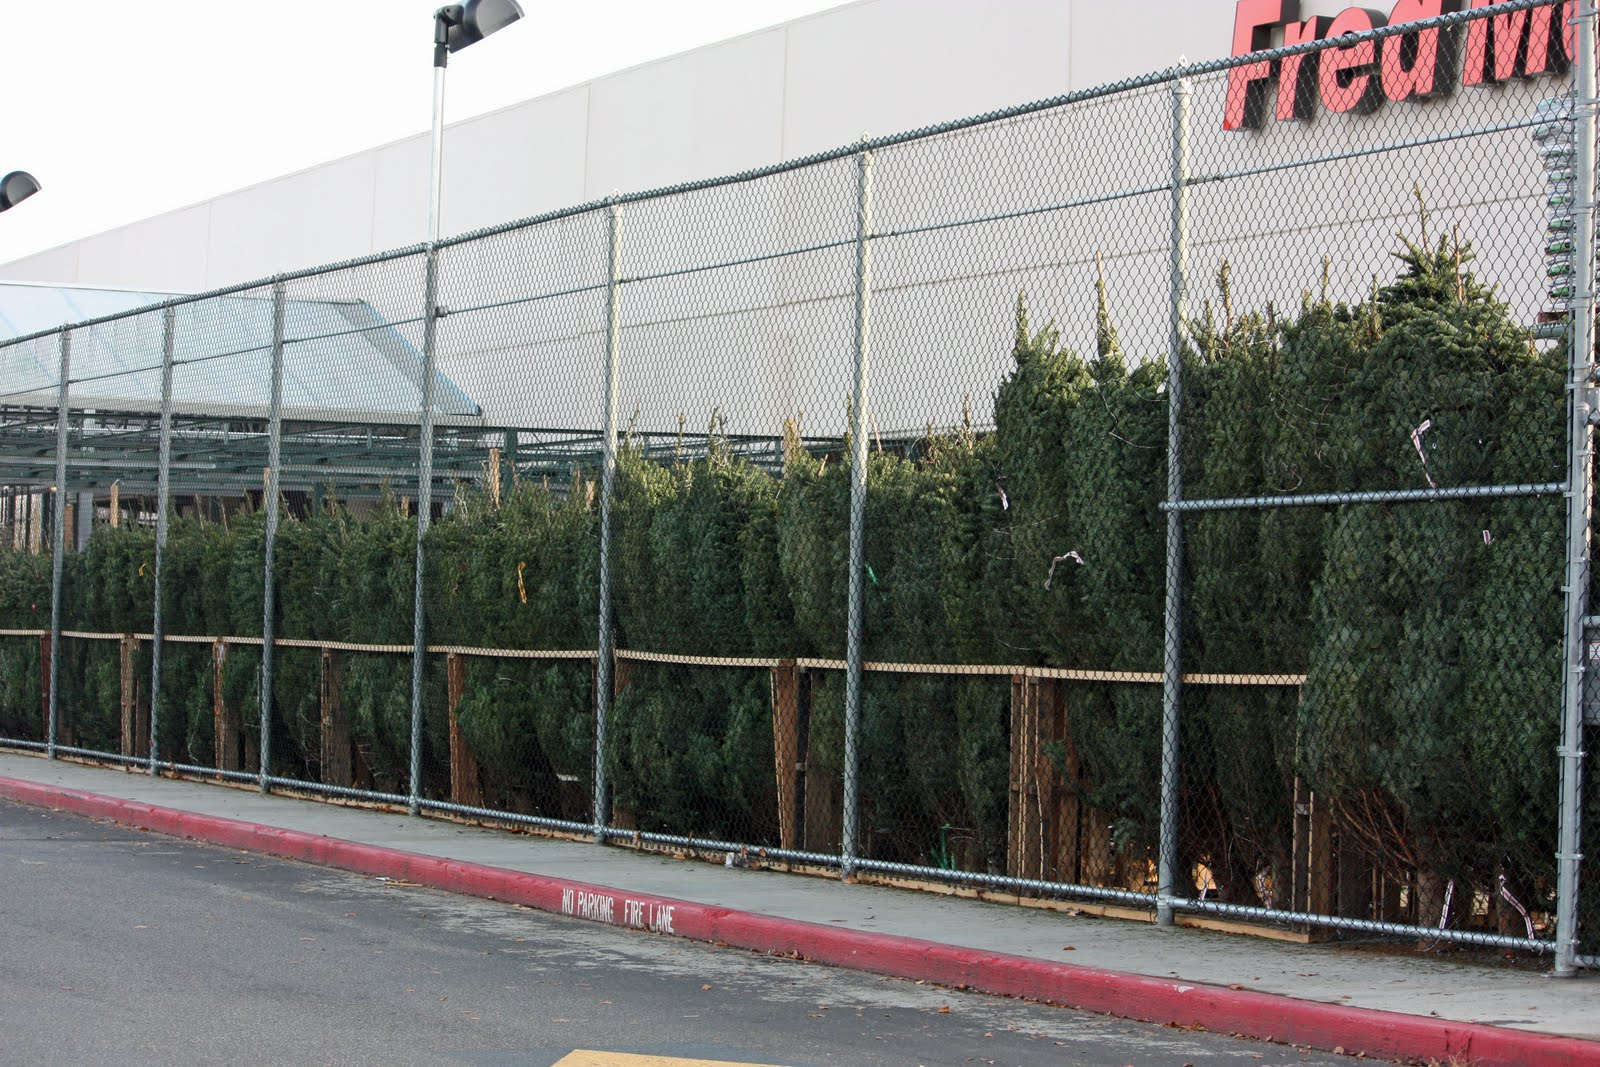 trees stacked deep and ready for holiday shoppers this weekend at fred meyer when do you put your christmas tree up we usually do ours thanksgiving - Fred Meyer Christmas Trees